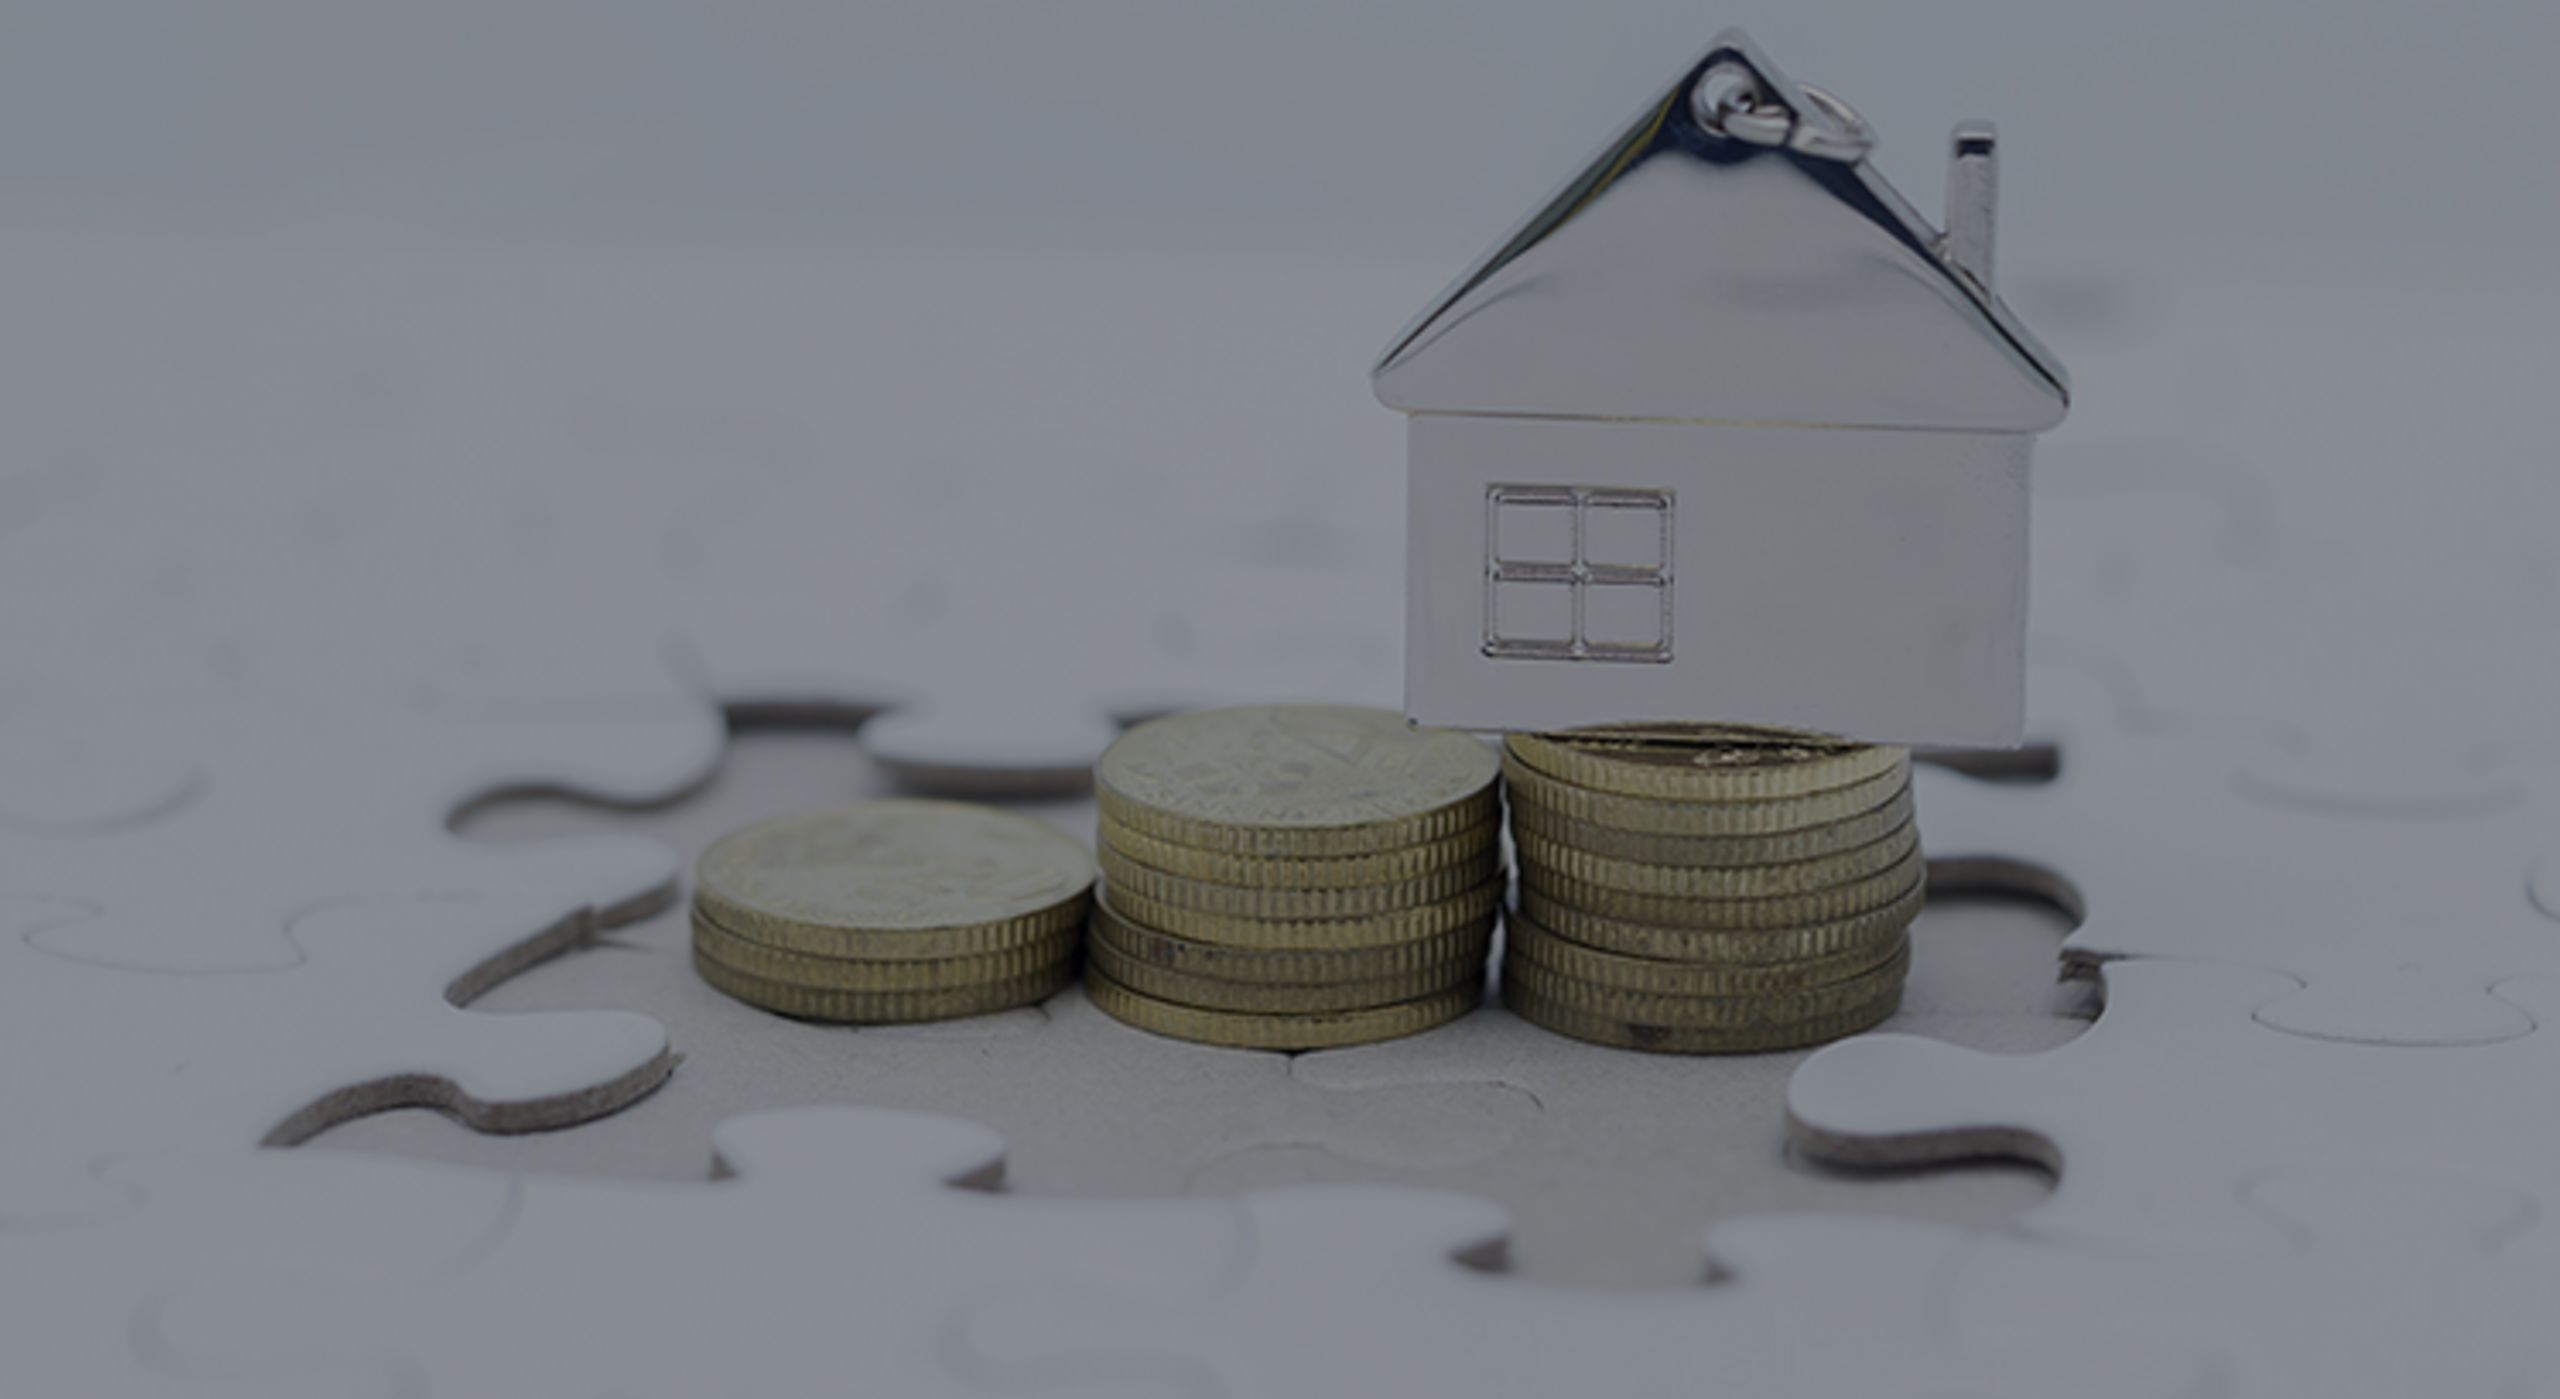 Buy A Home In MD |  The Economic Impact of Buying a Home